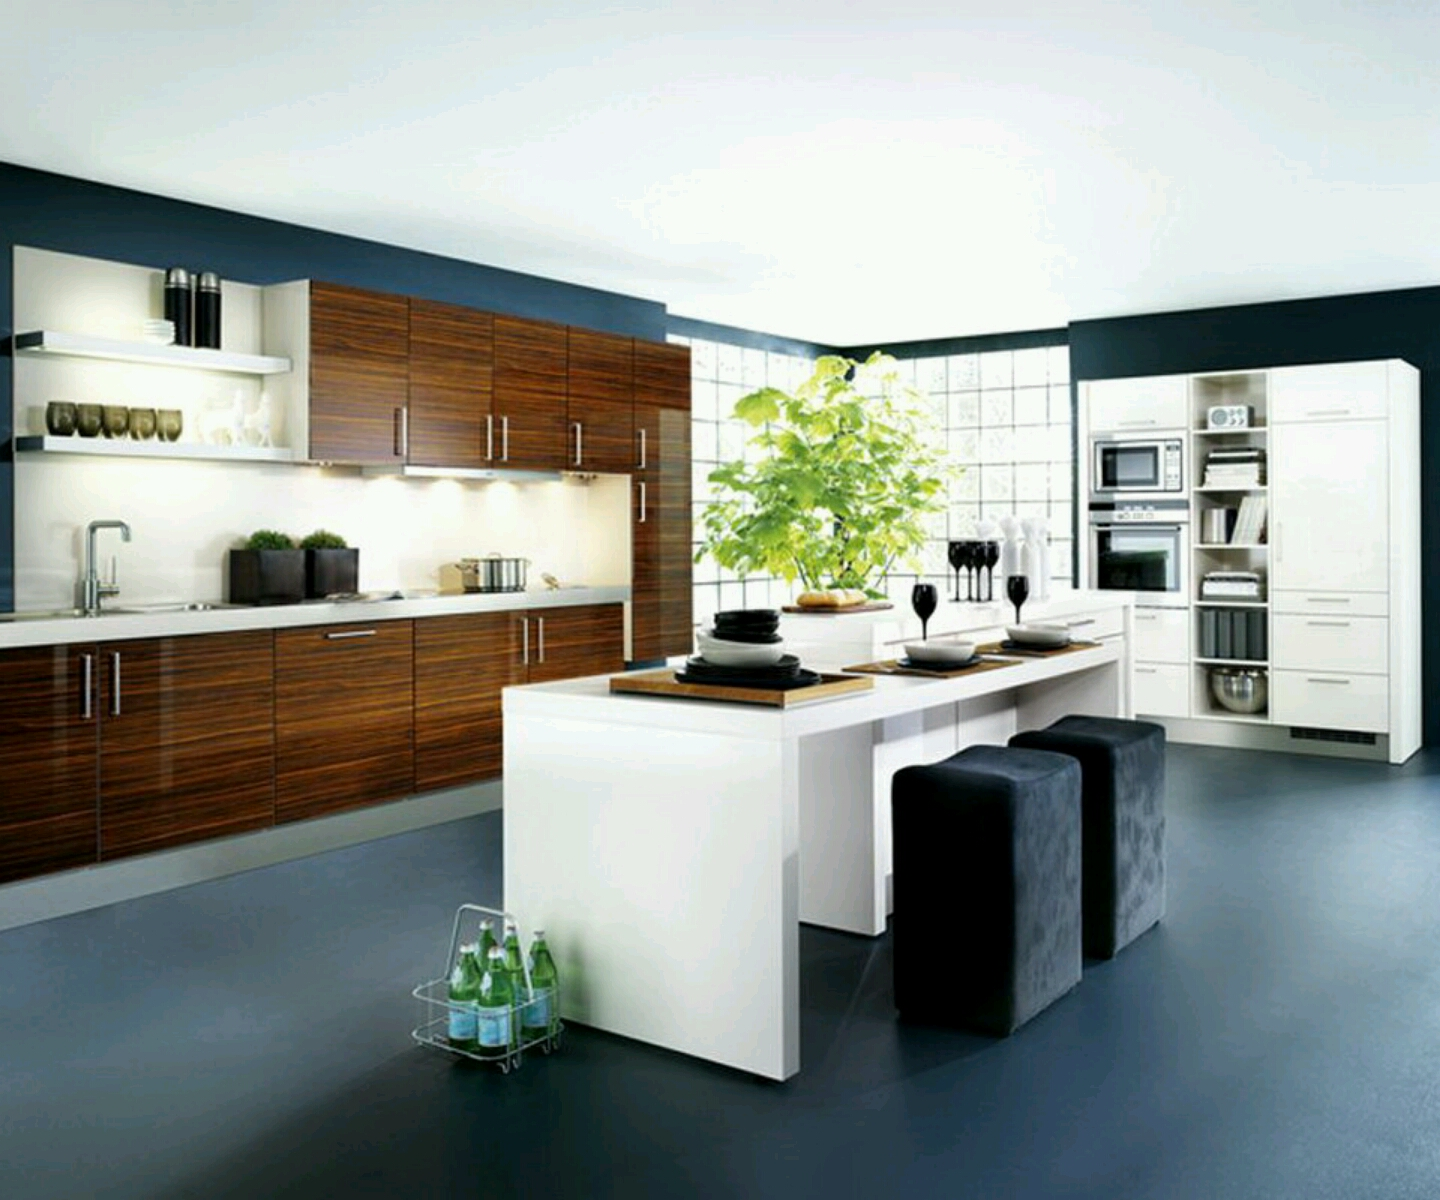 New home designs latest kitchen cabinets designs modern for Mordern kitchen designs